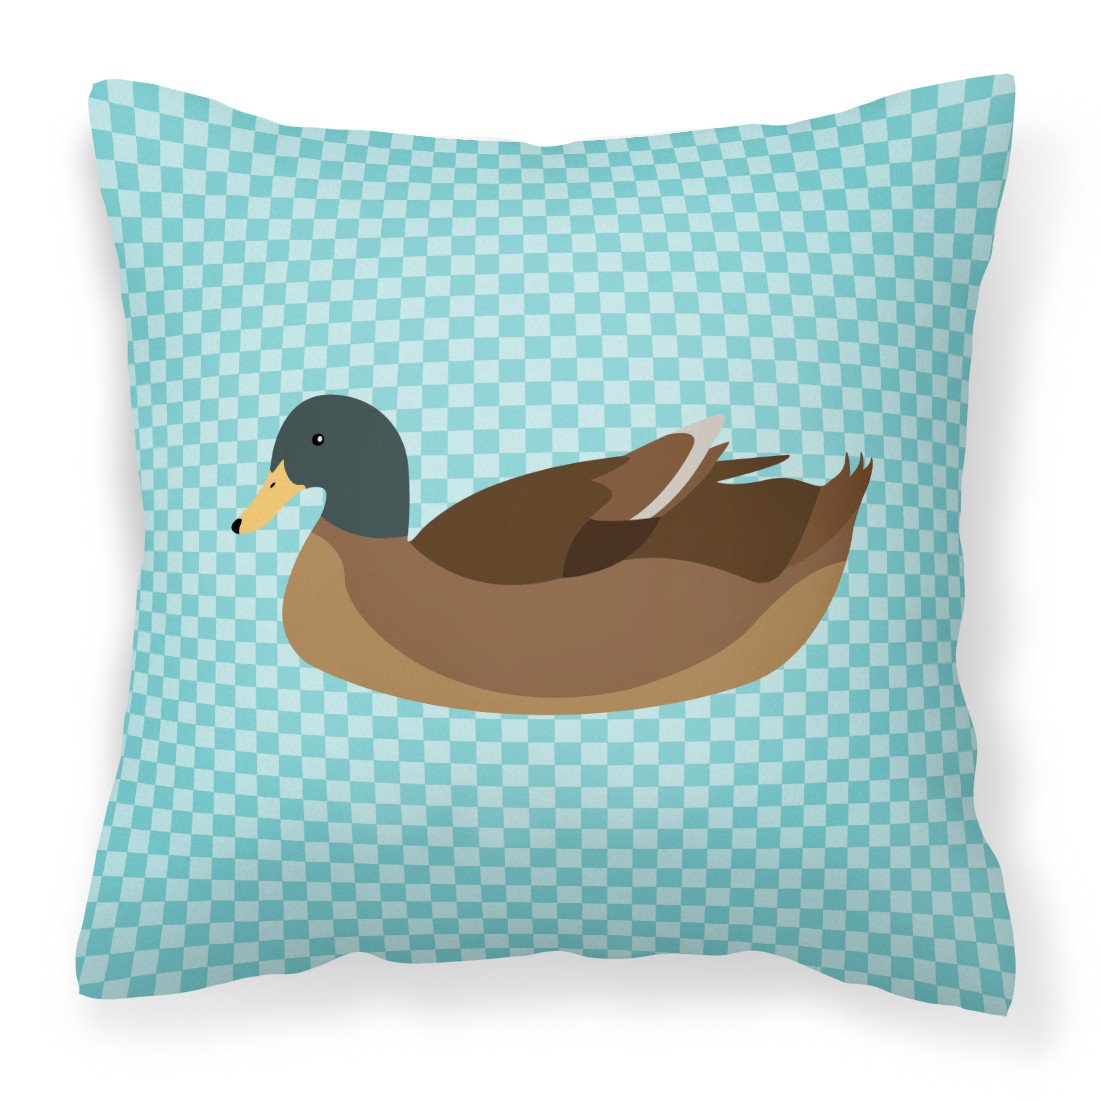 Khaki Campbell Duck Blue Check Fabric Decorative Pillow BB8040PW1818 by Caroline's Treasures